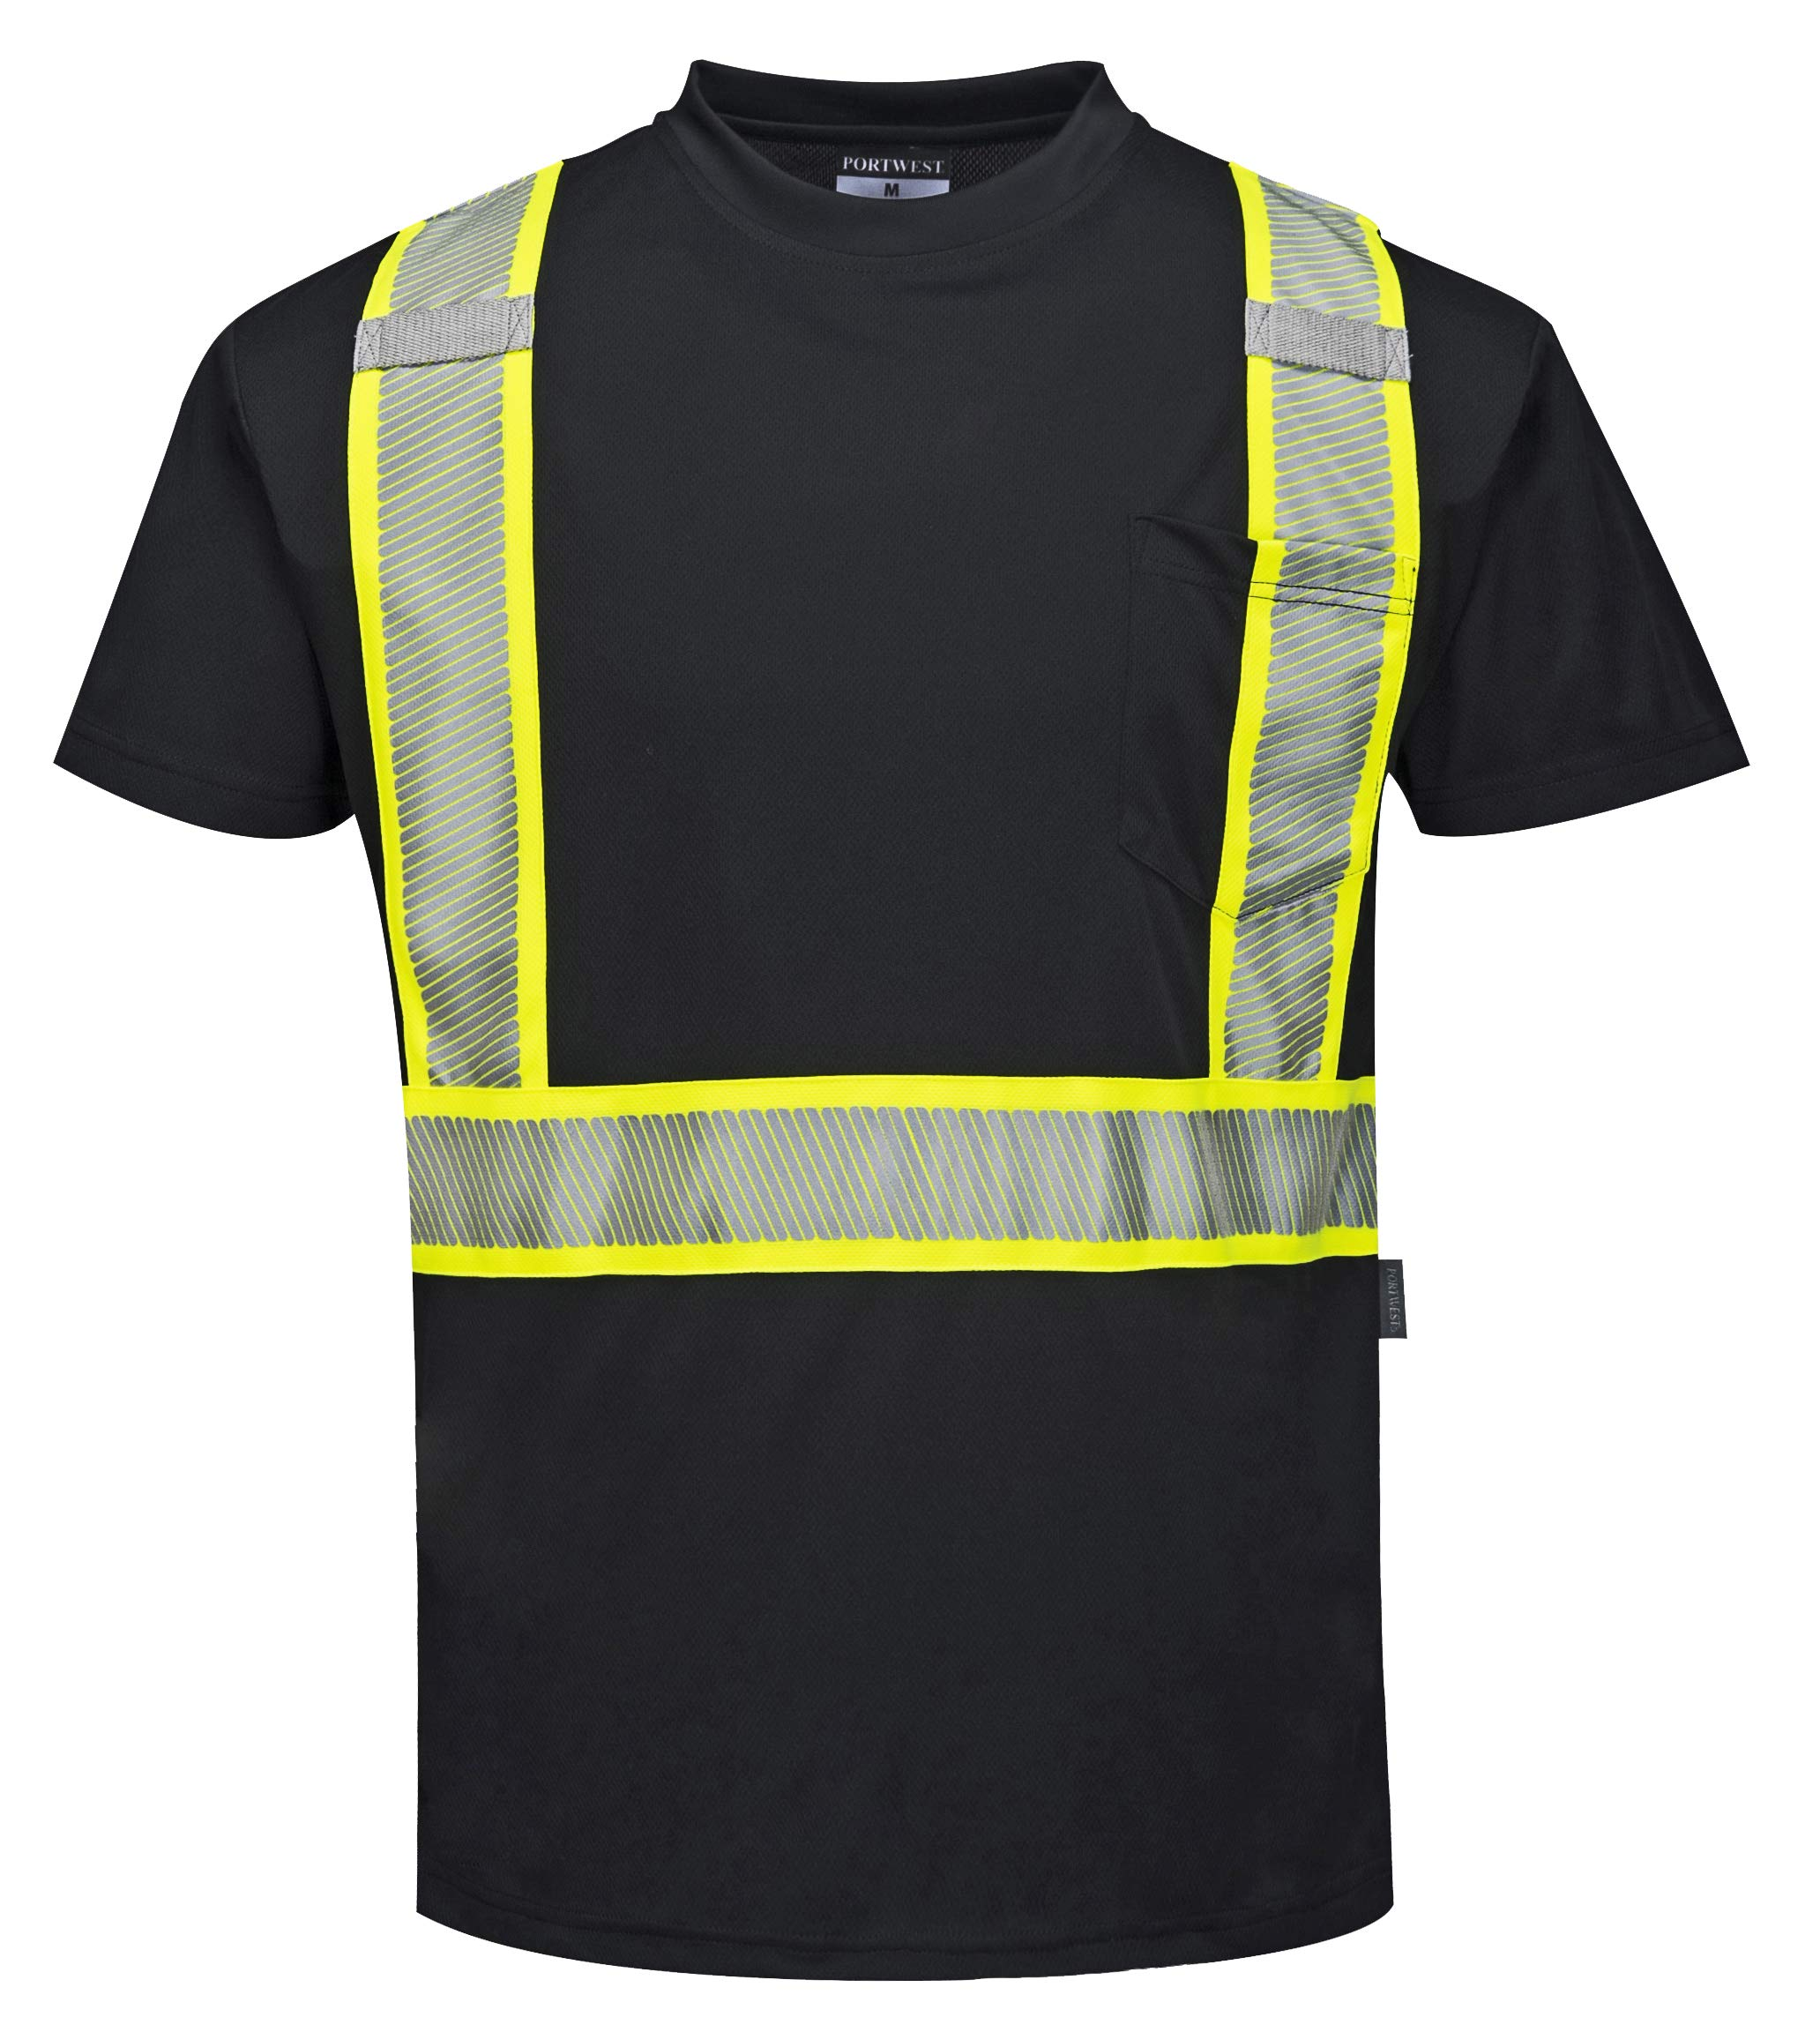 Portwest Austin Short-Sleeved T-Shirt Viz Visibility Reflective Safety Work Wear Top, 5XL Black